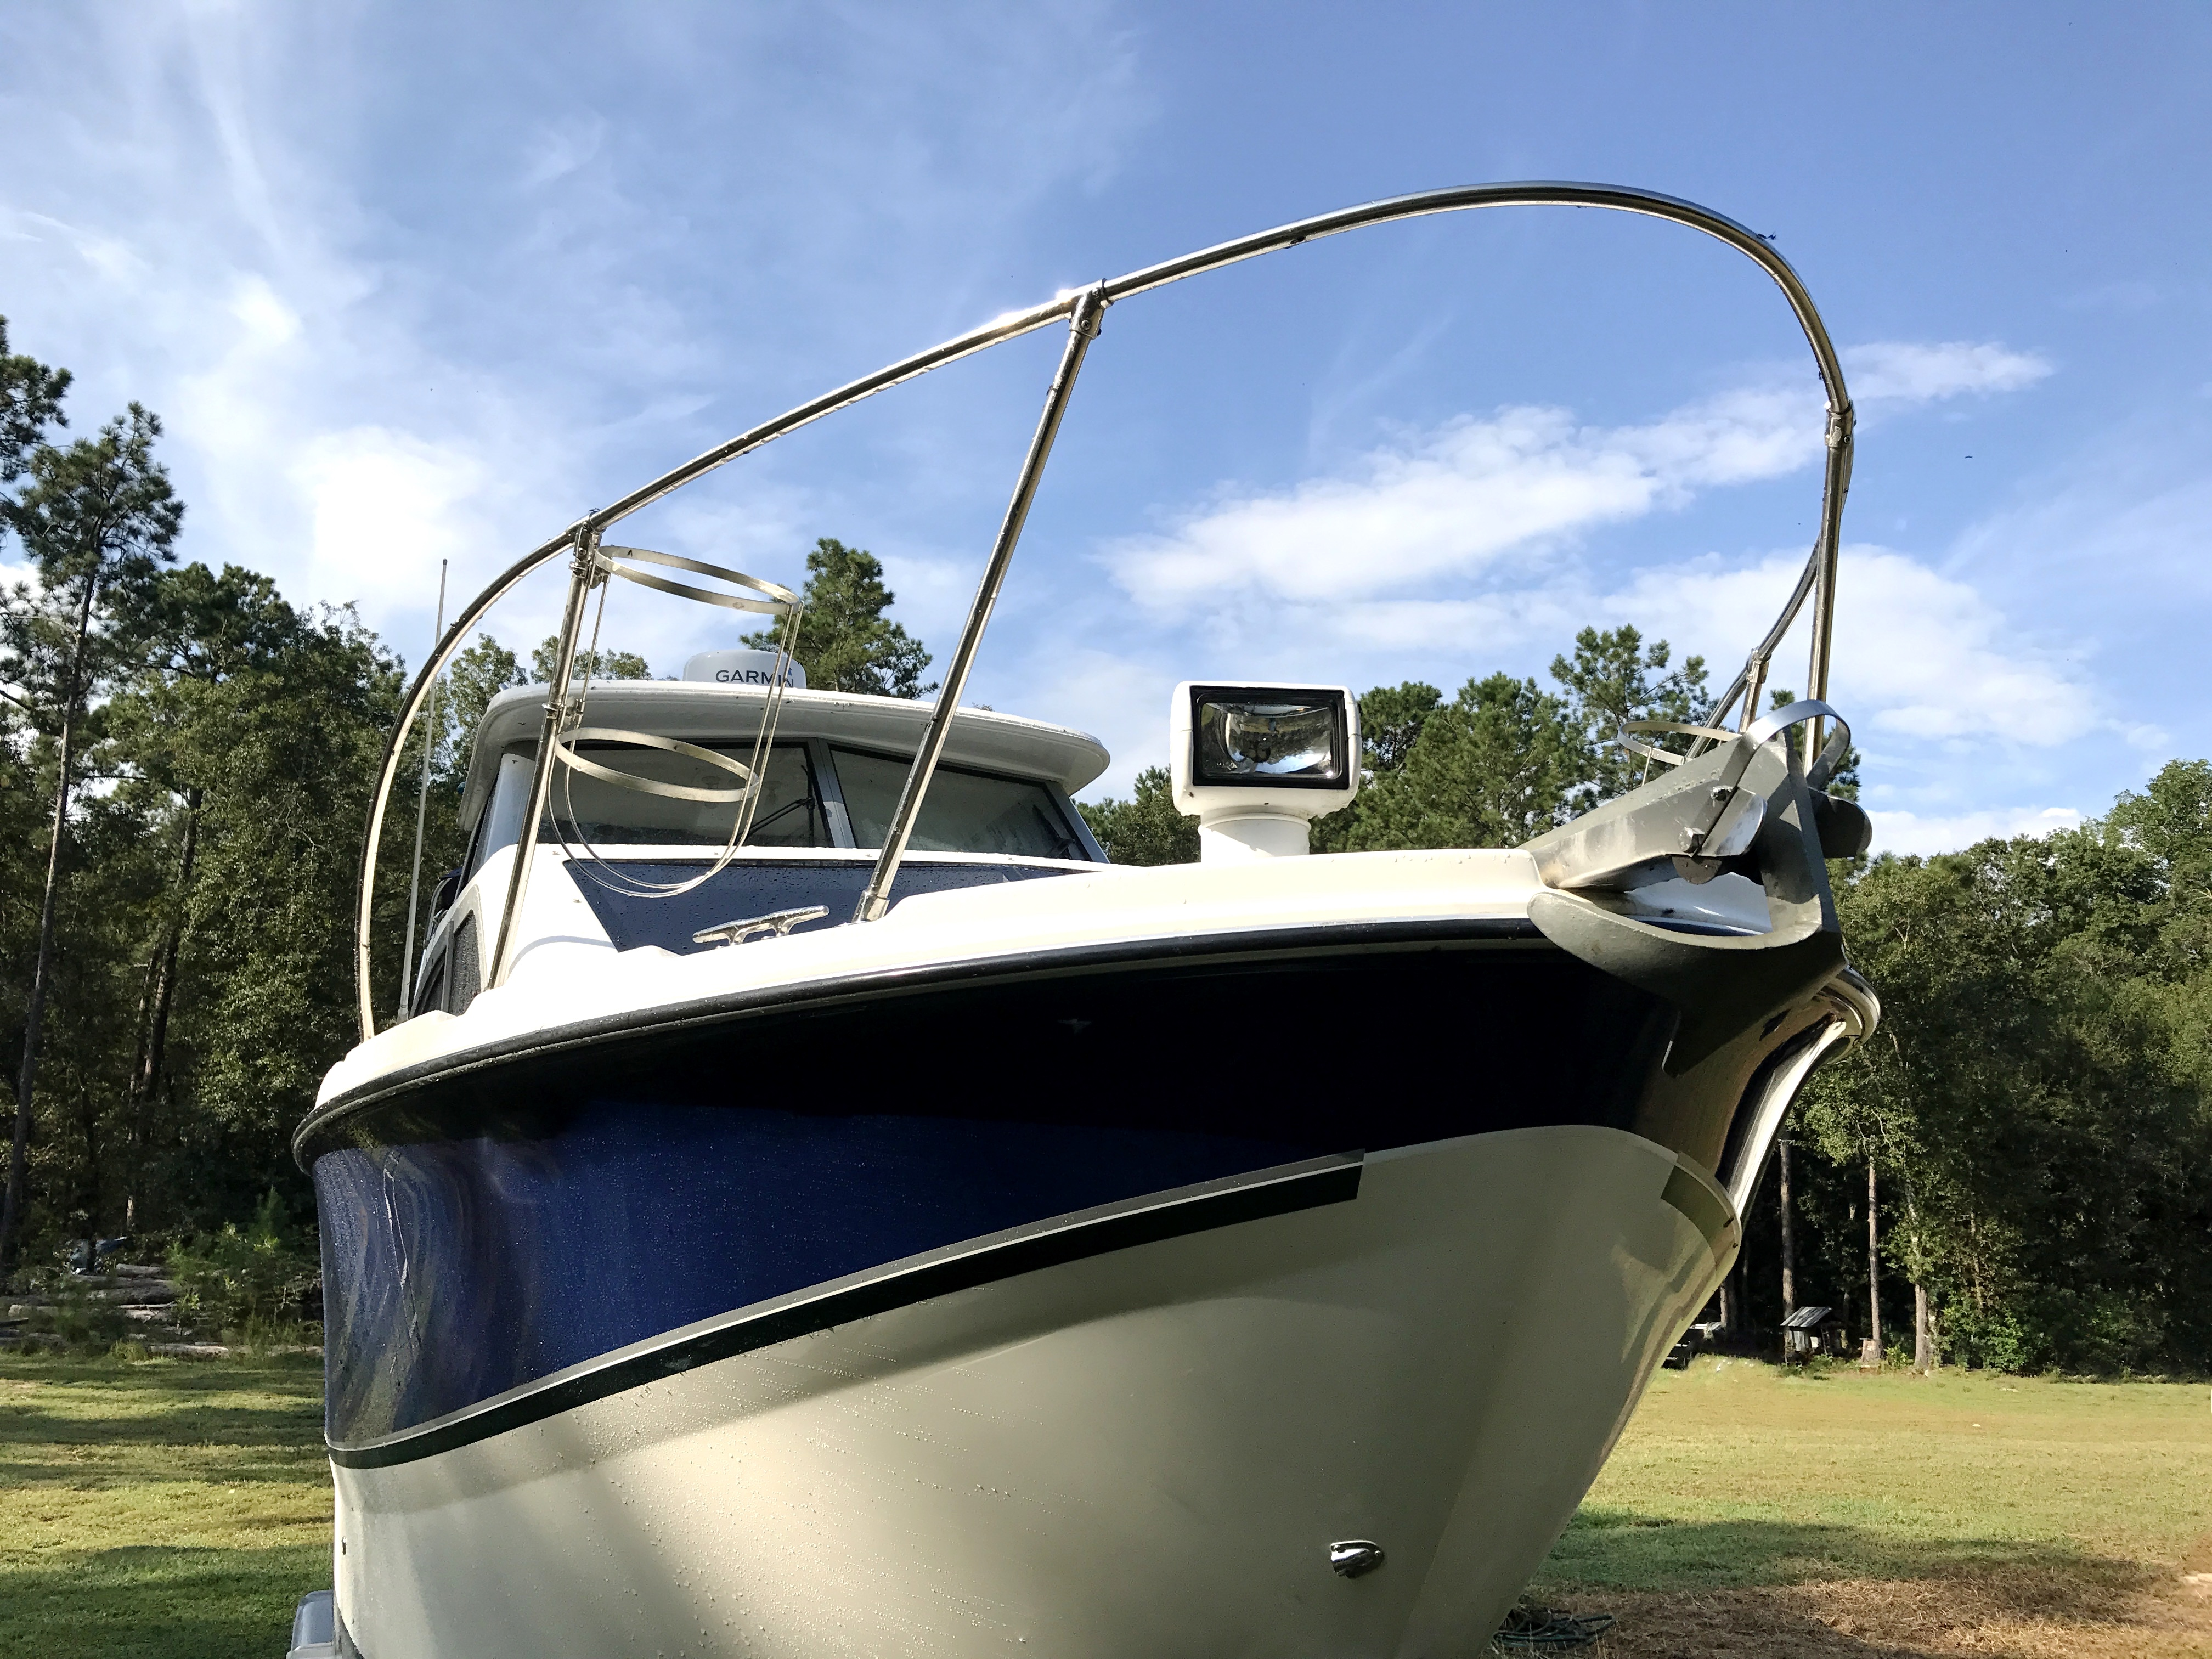 Bayliner Discovery 246 EC - Bayliner discovery bow rails, anchor, and remote spot light